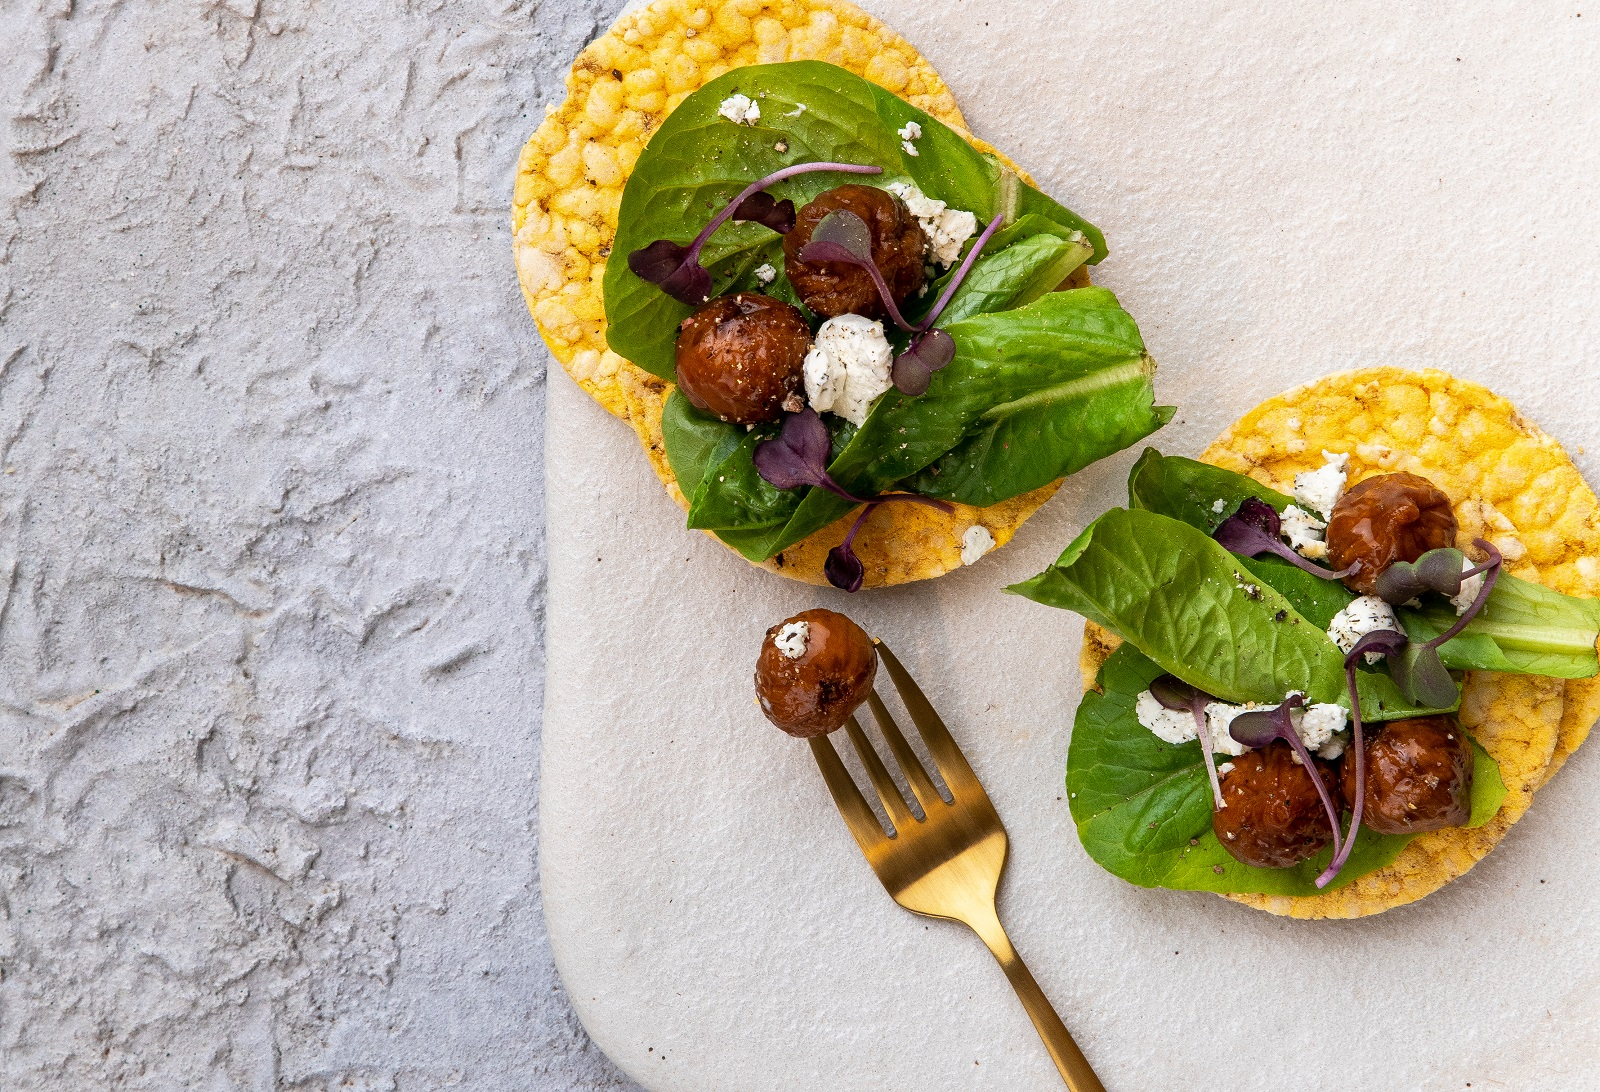 Marinated Baby Fig, Salad & Goats Cheese on CORN THINS slices